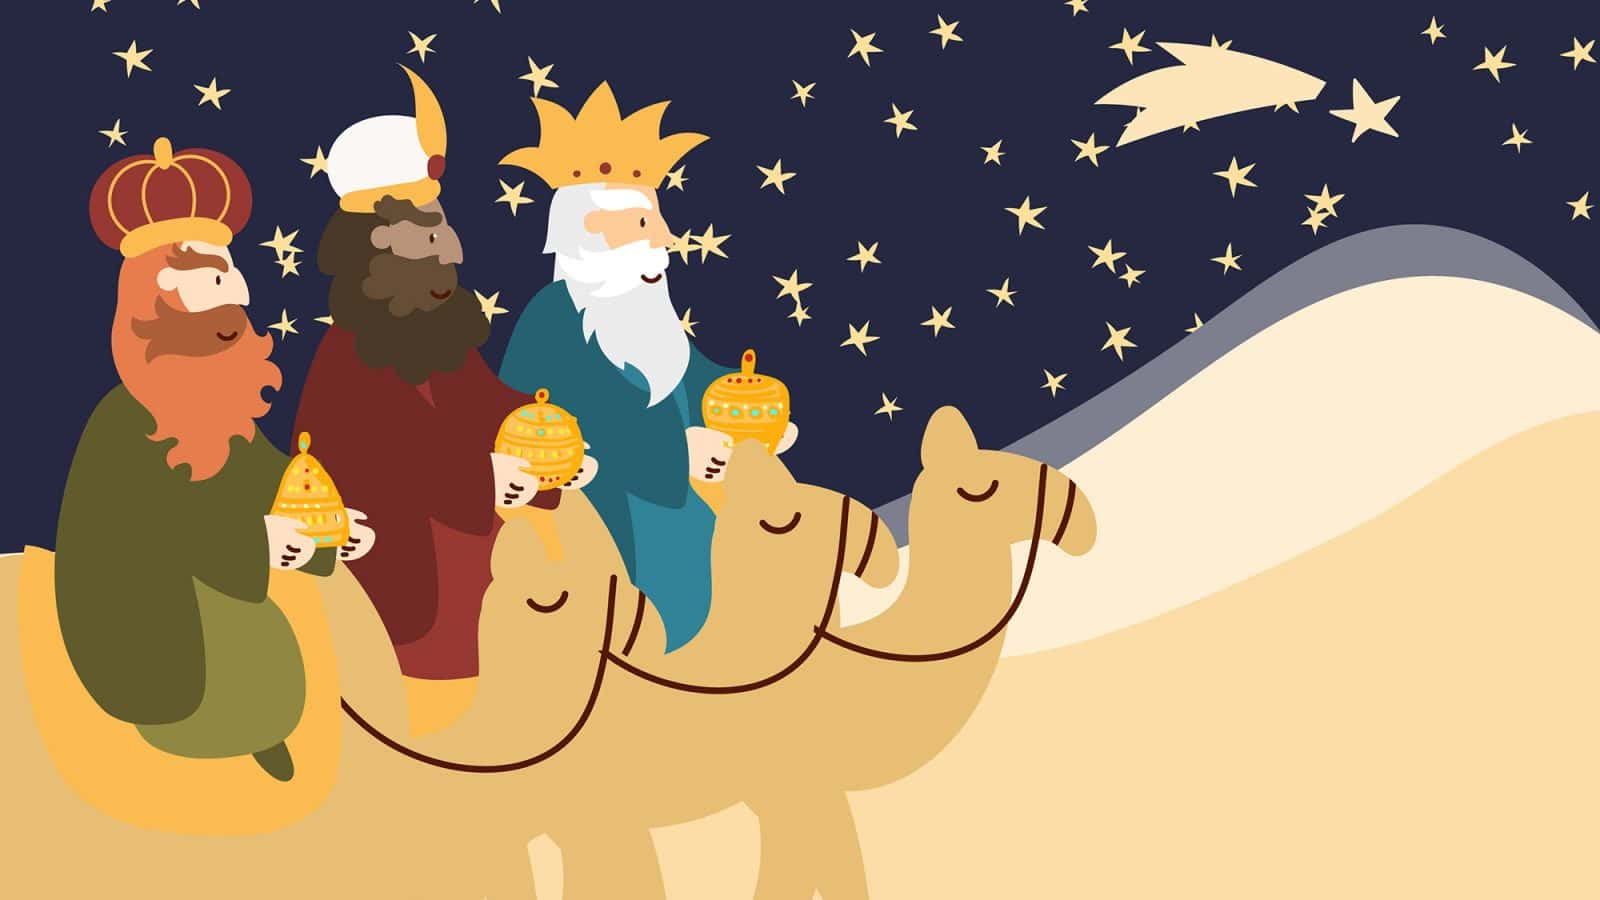 Who Were the Three Wise Men and Where Did They Come From?